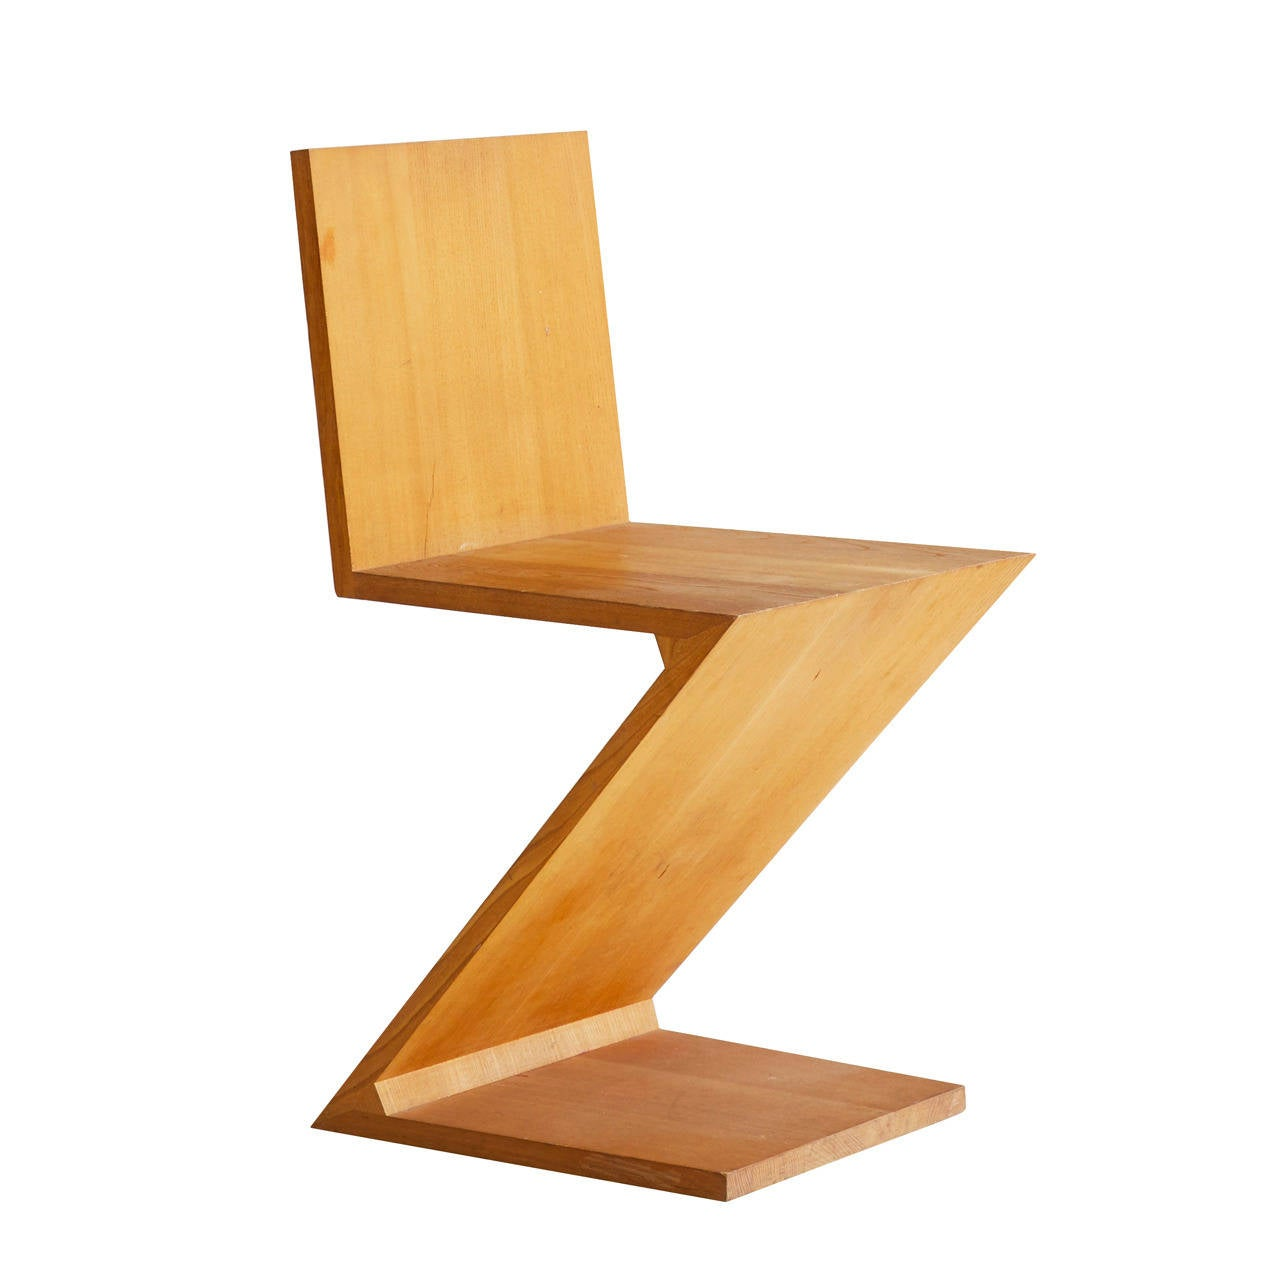 gerrit rietveld zig zag chair at 1stdibs. Black Bedroom Furniture Sets. Home Design Ideas